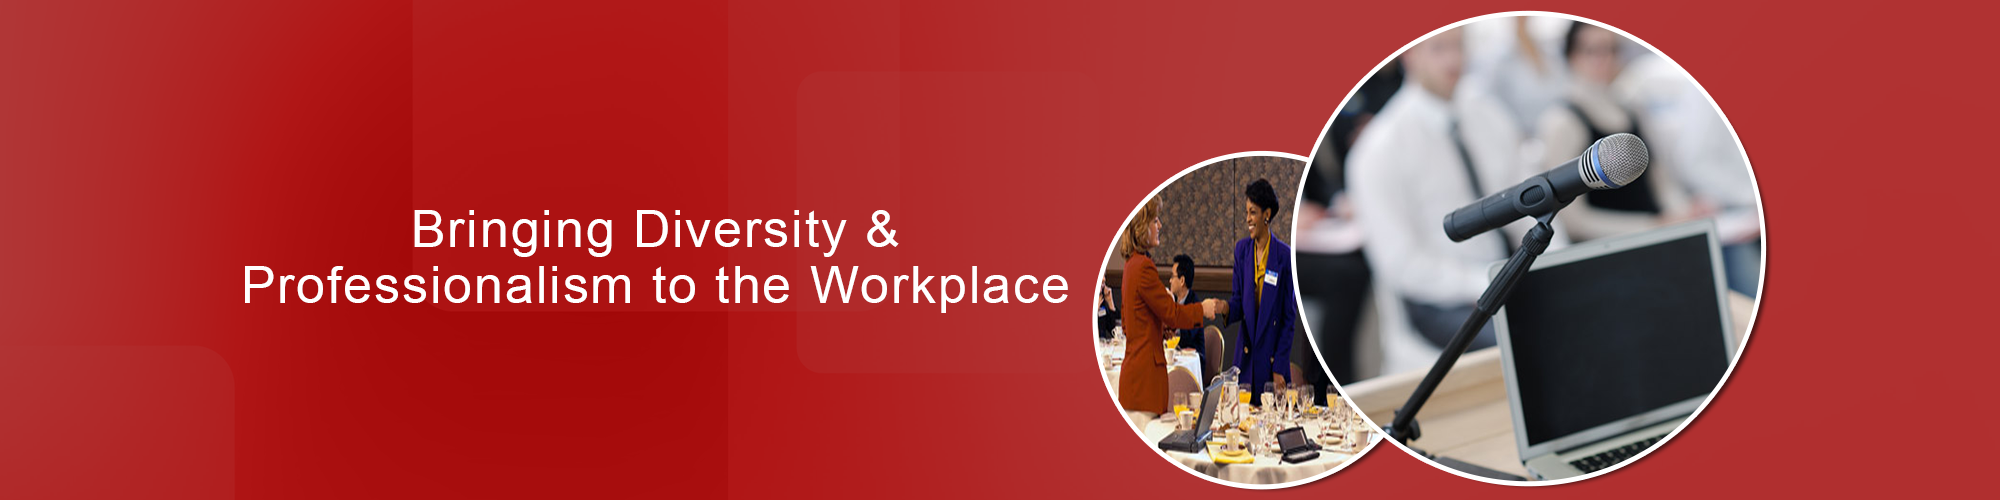 Bringing Diversity and Professionalism to the Workplace